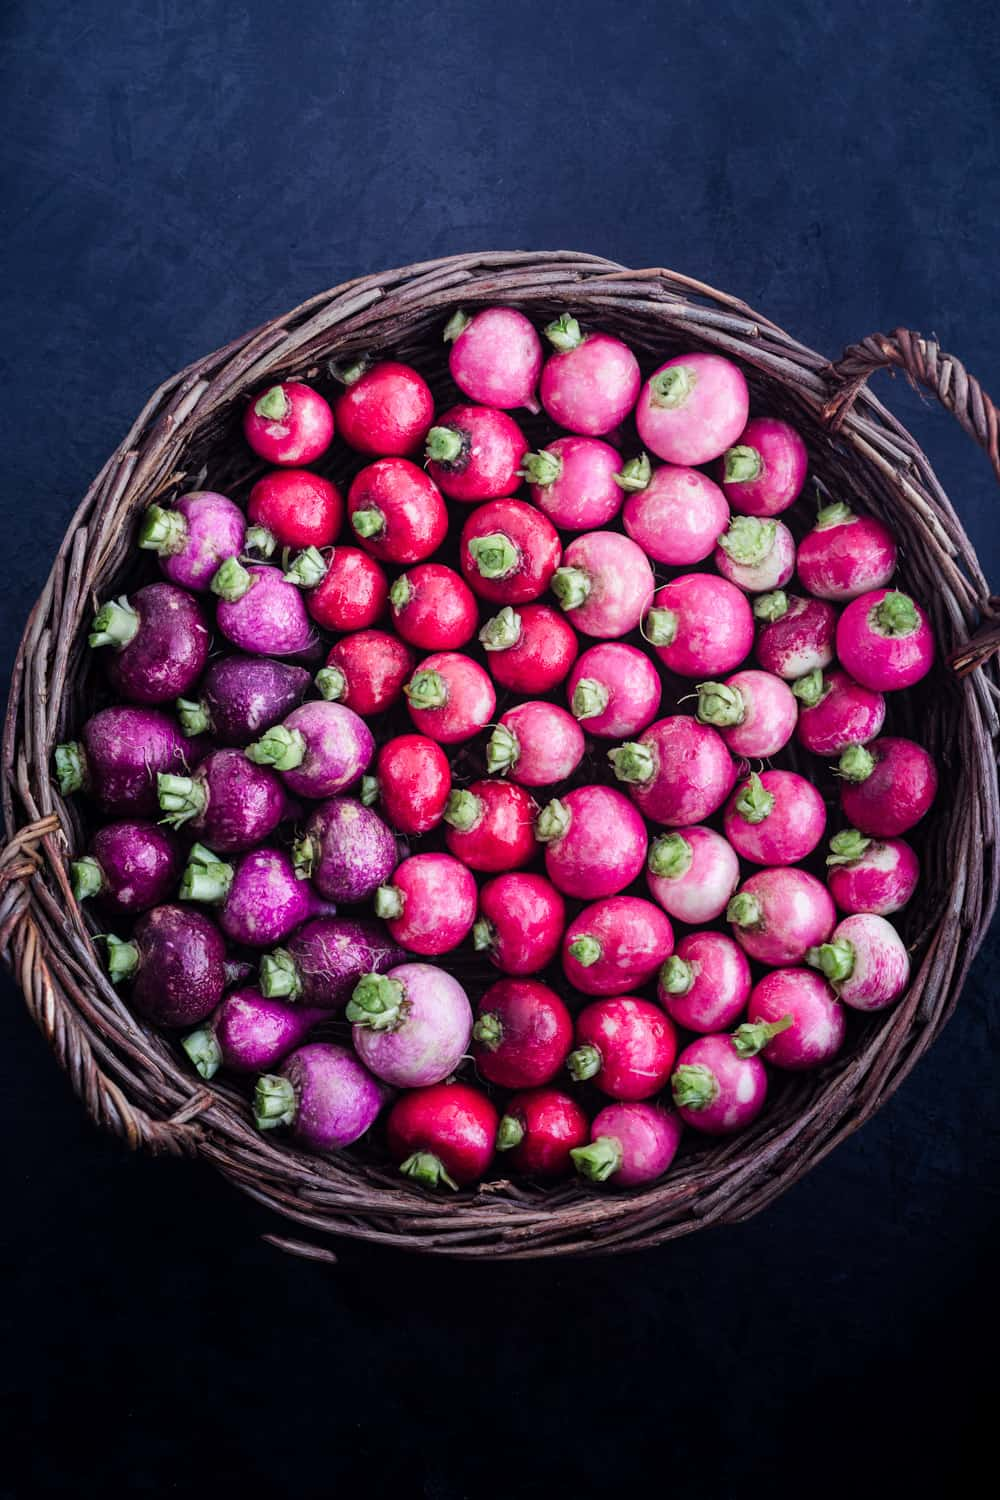 basked filled with red, purple and pink radishes, overheard shot